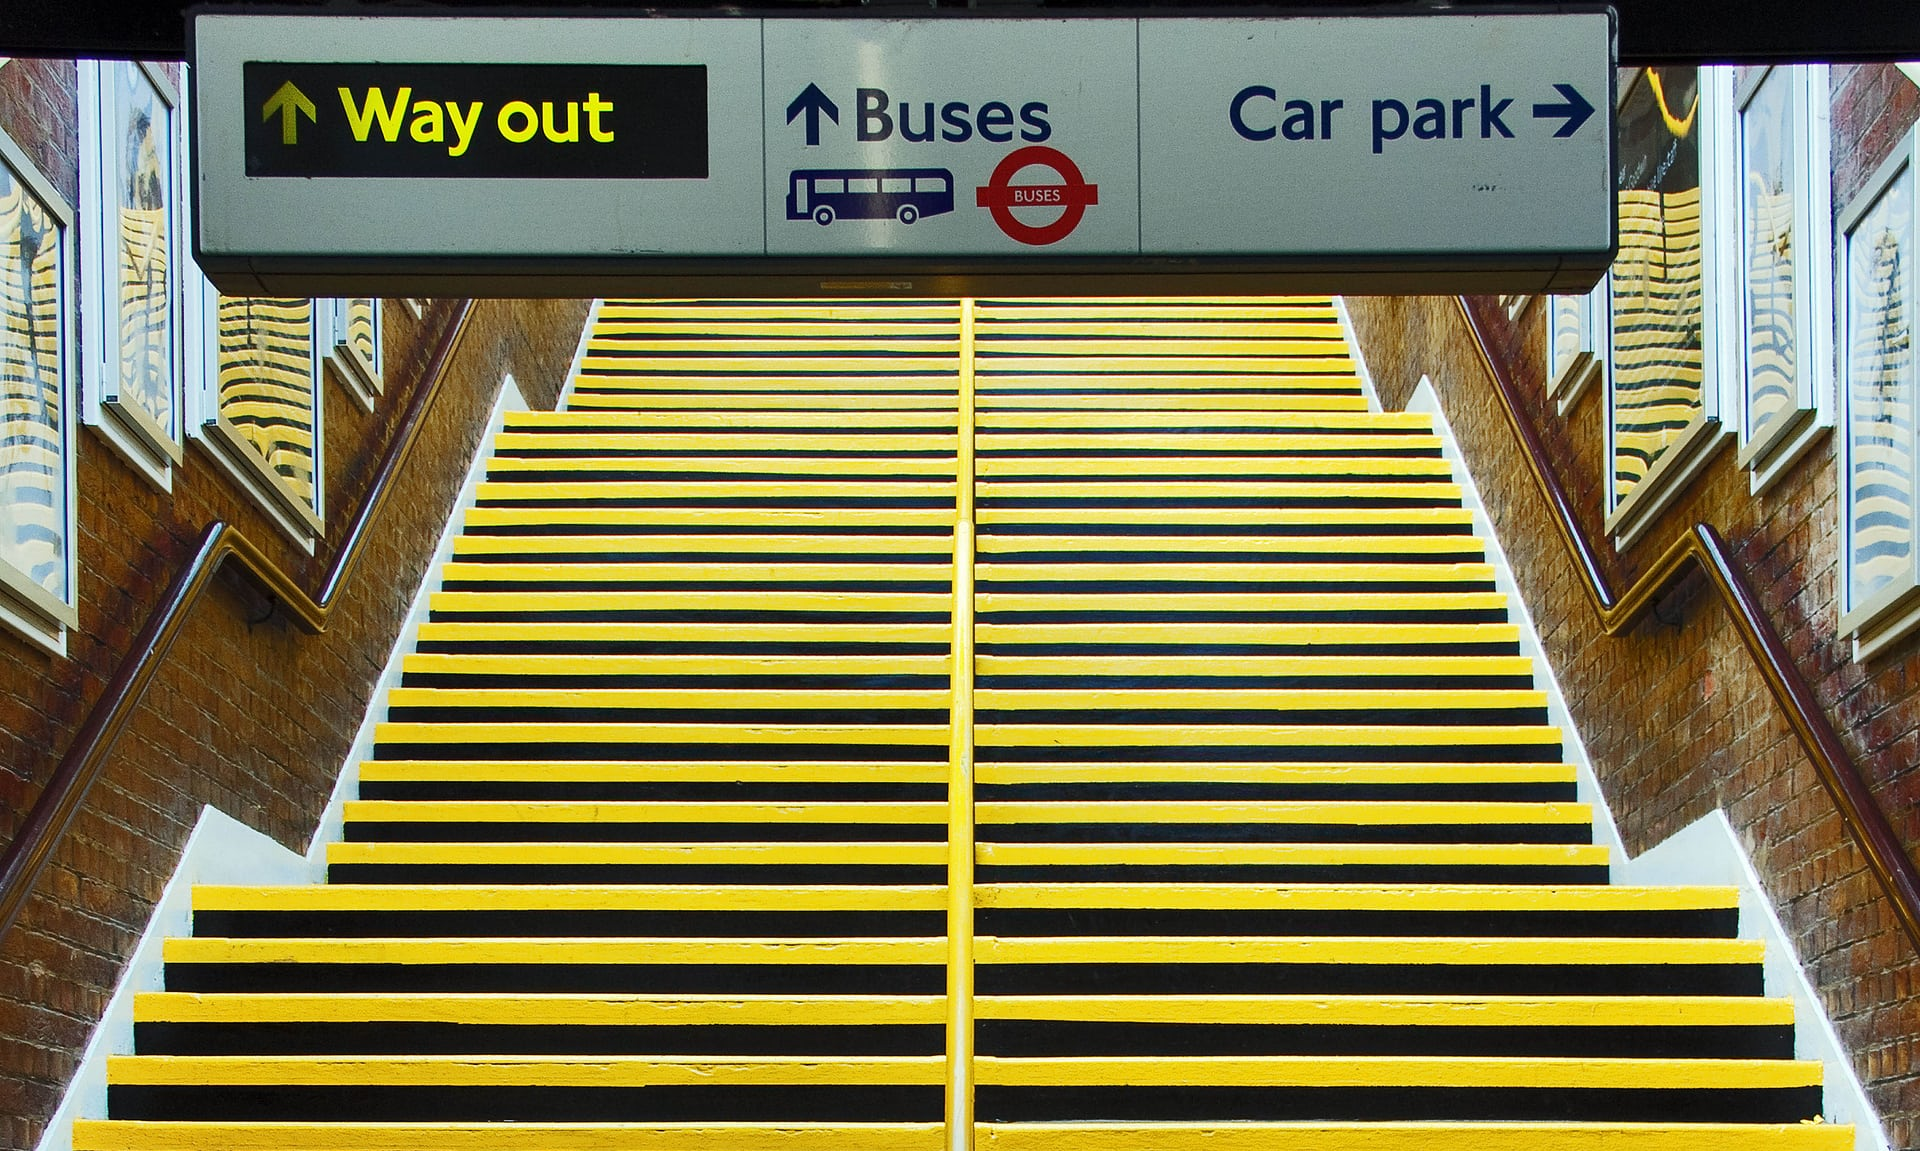 Photo of the subway stairs with signs indicating the way out, buses and carpark